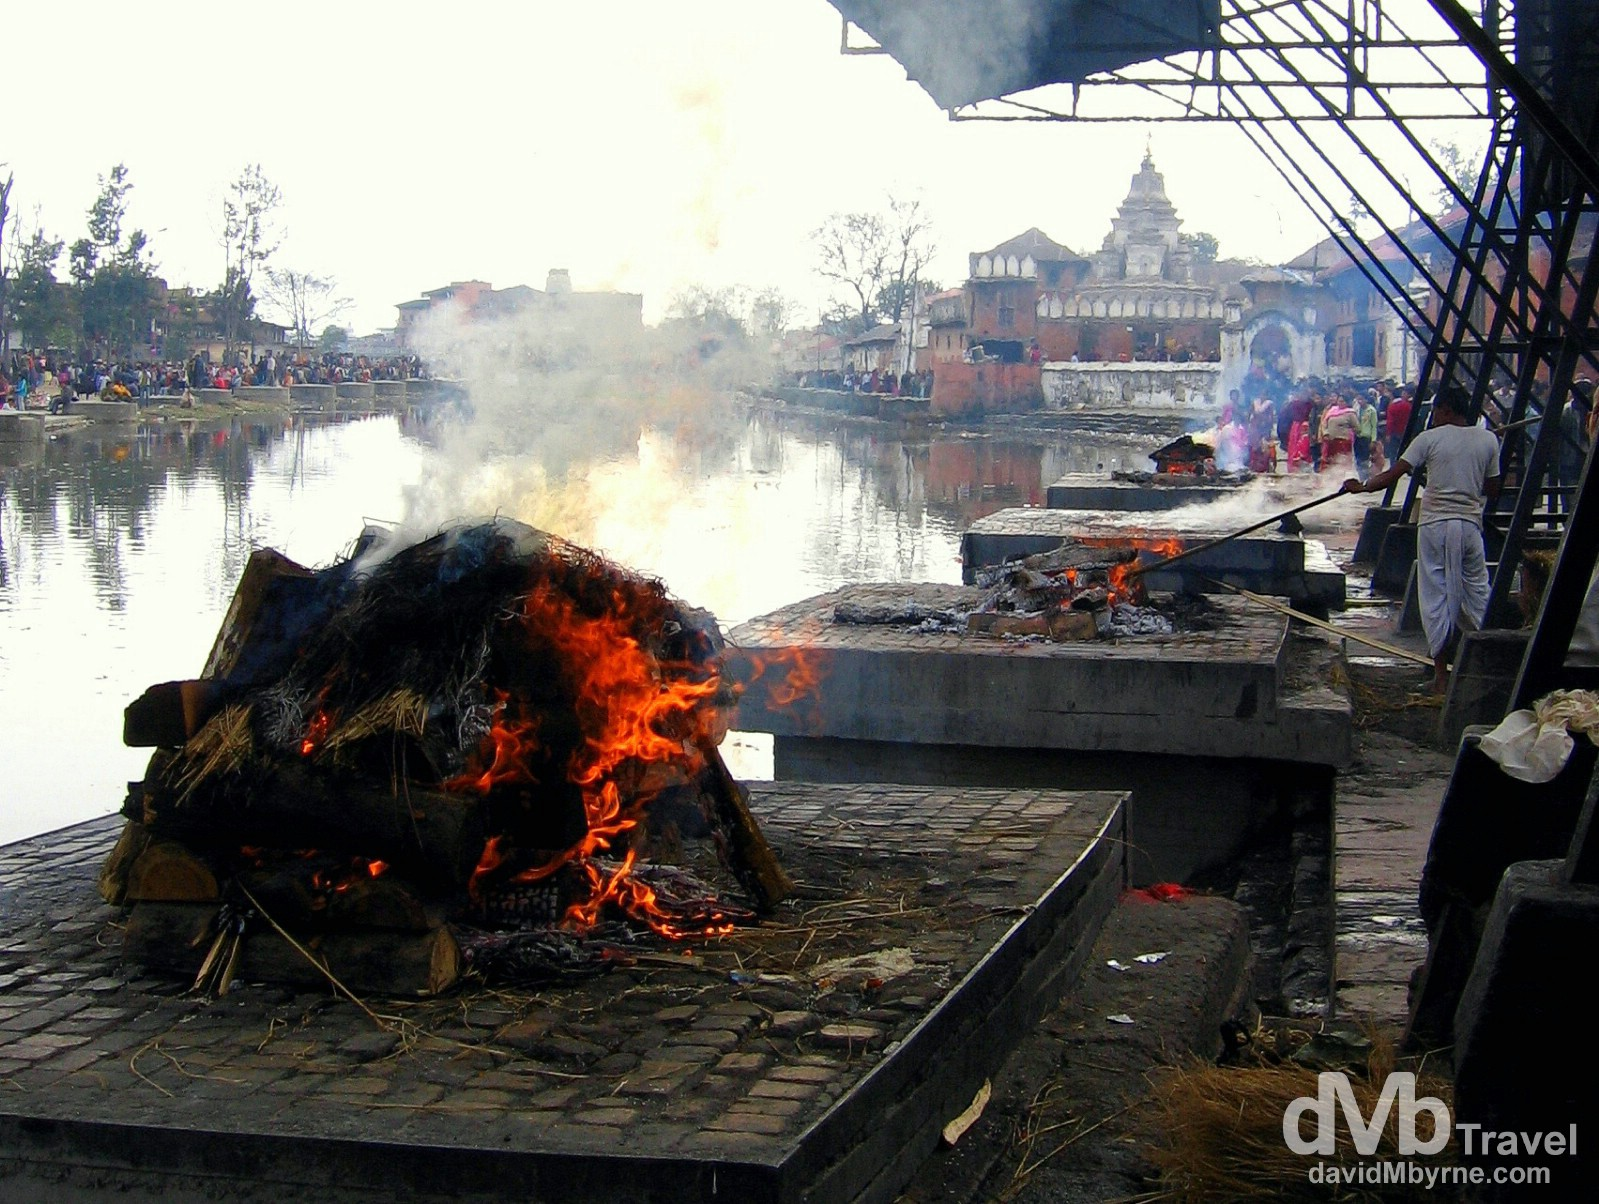 Pashupatinath lines the holy River Bagmati and is a popular cremation site for Hindis. Pictures here were allowed but one is expected to show the respect required at any funeral service. Pashupatinath, Kathmandu, Nepal. March 6, 2008.